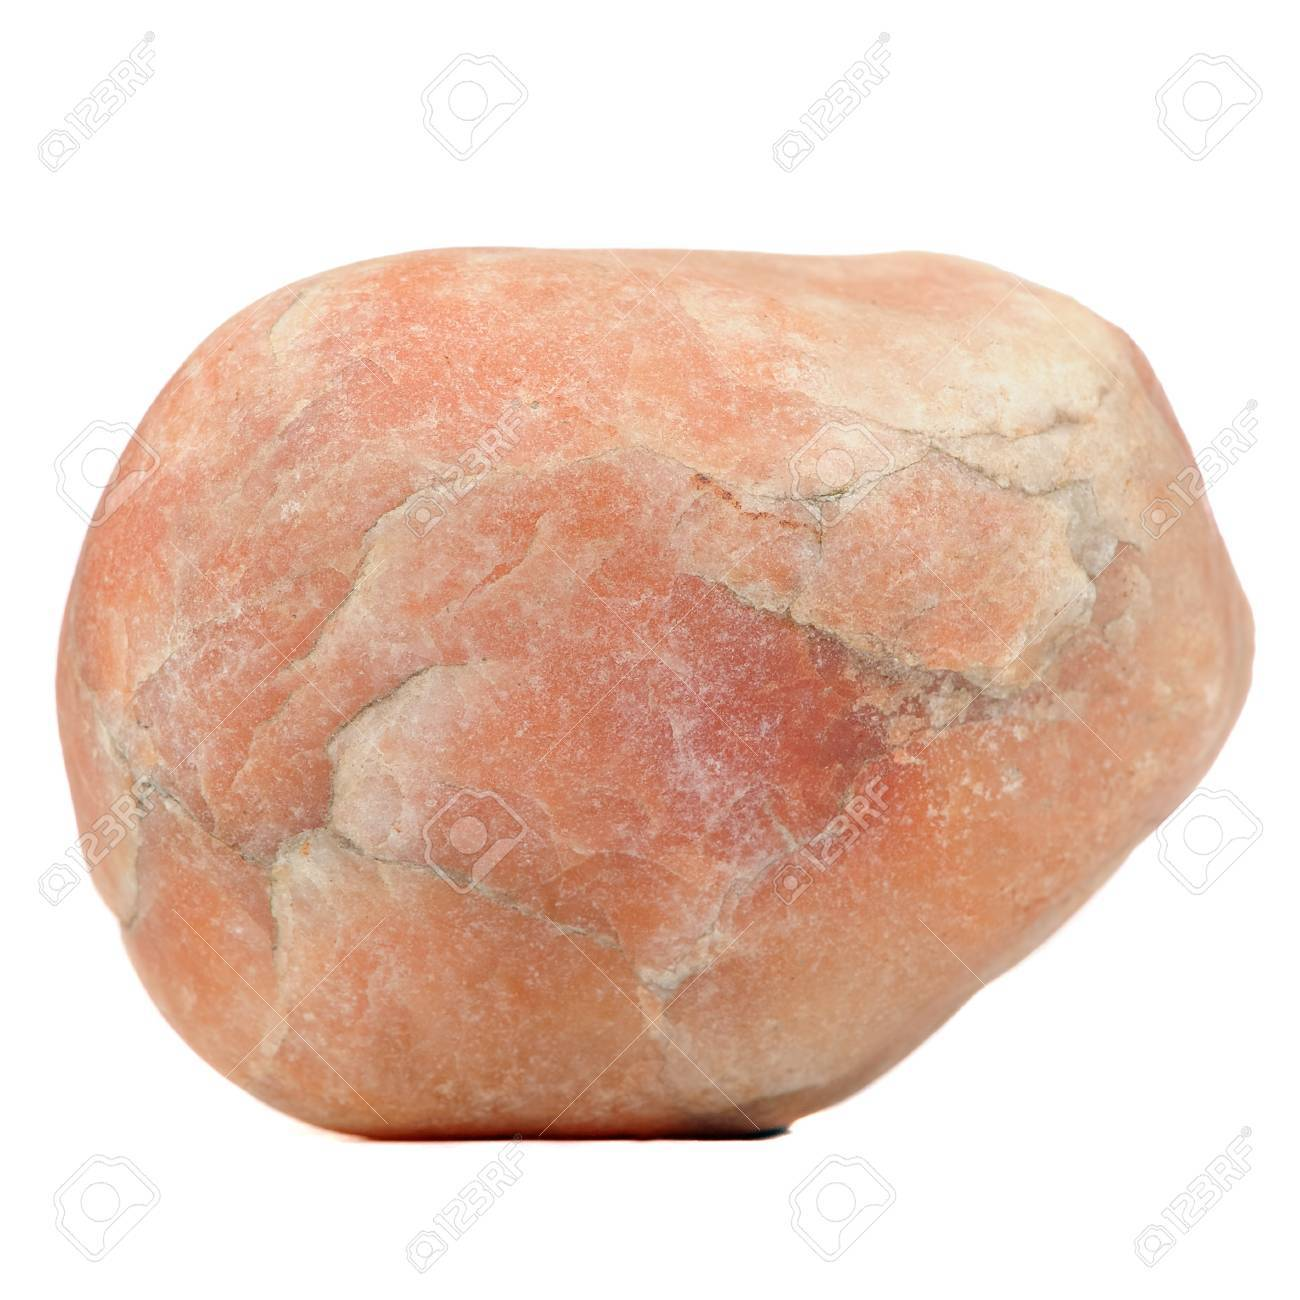 Red Granite Stone Isolated on White Background Stock Photo - 21602266